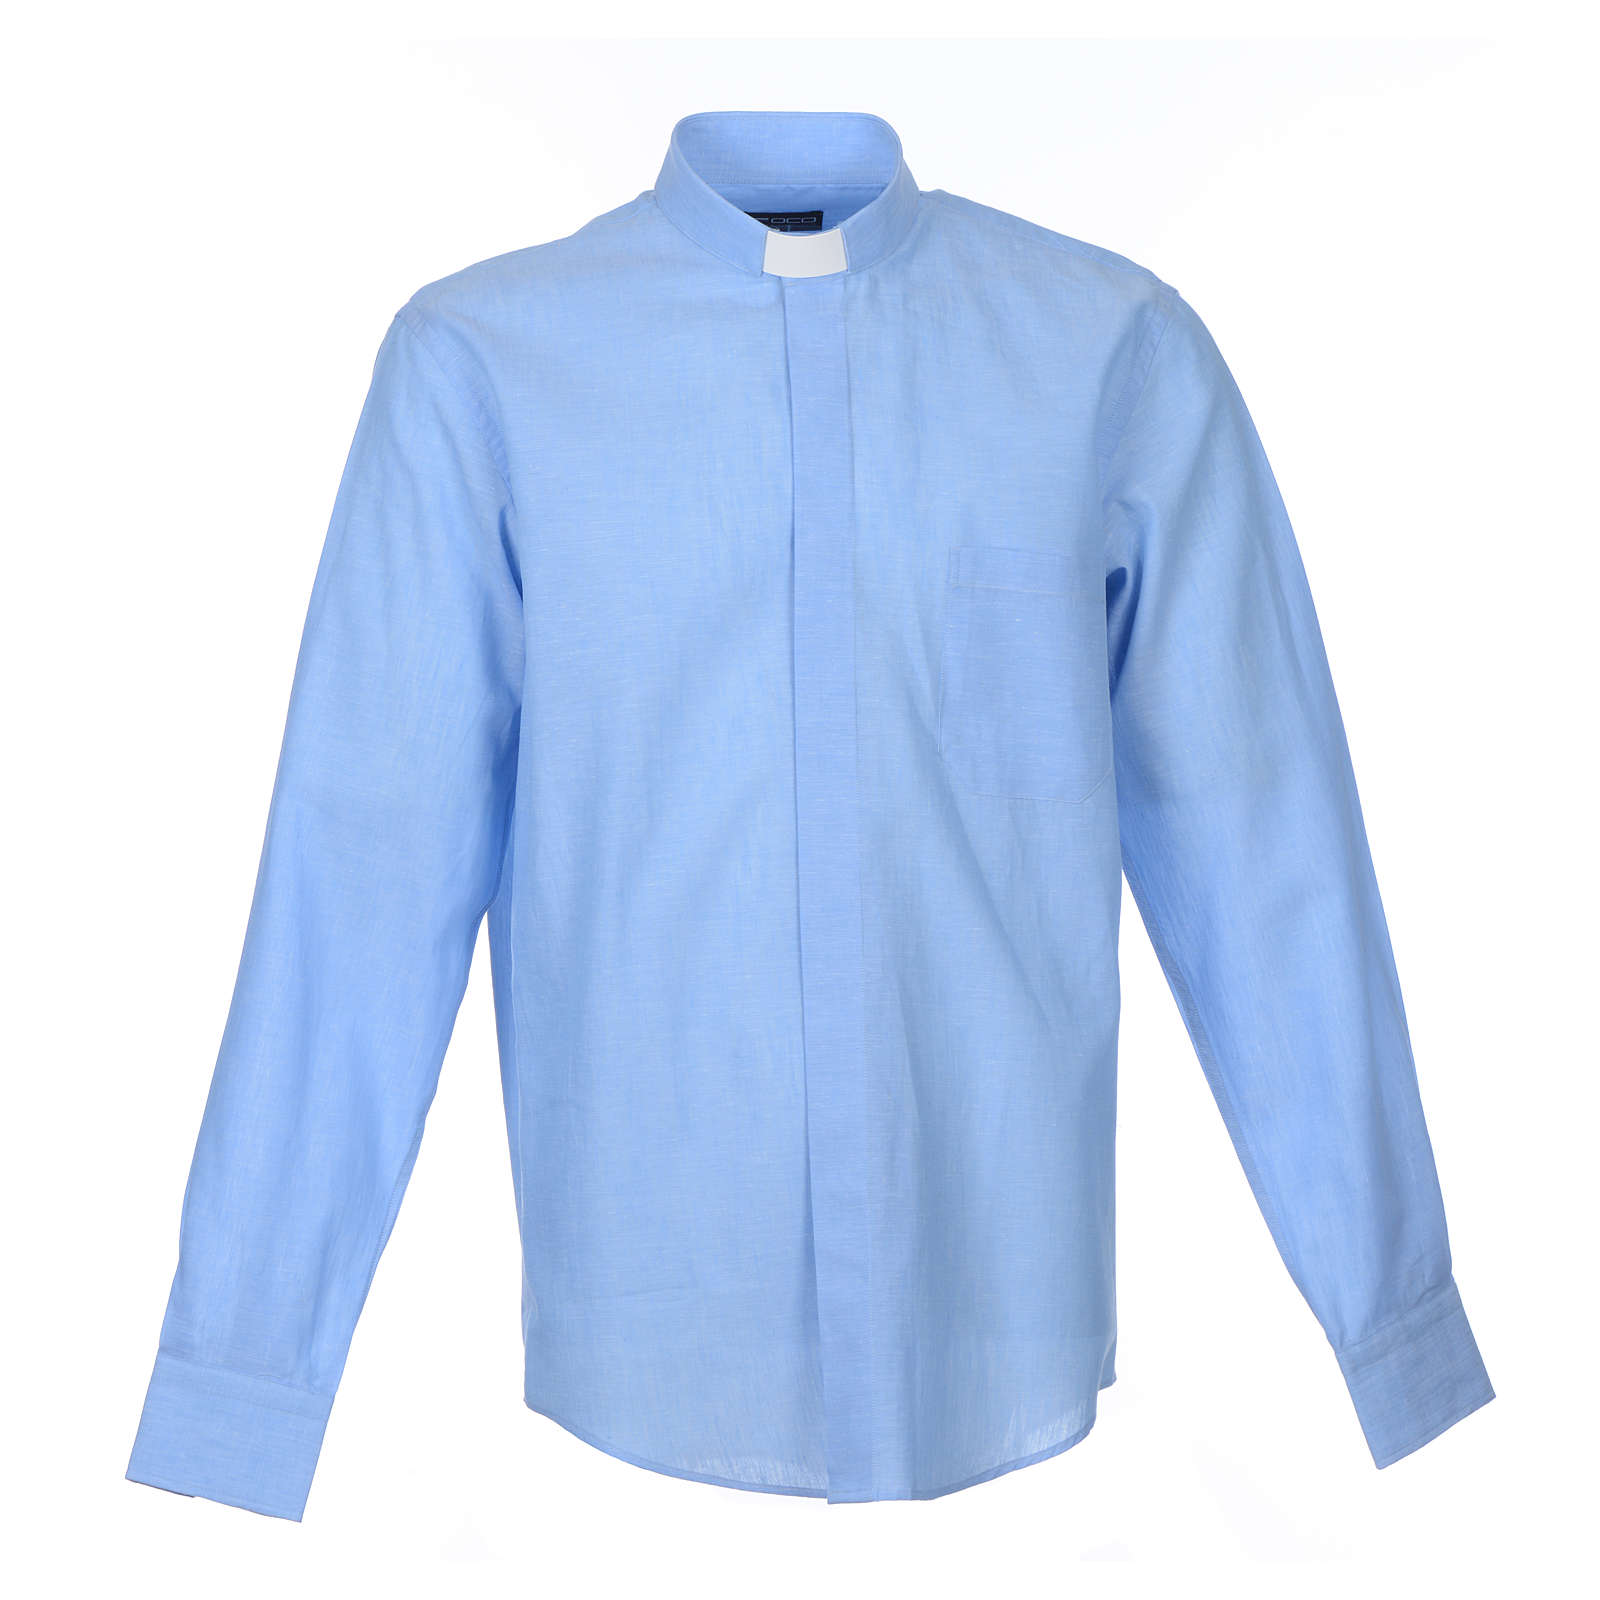 Long Sleeve Clergyman shirt in light blue linen 4